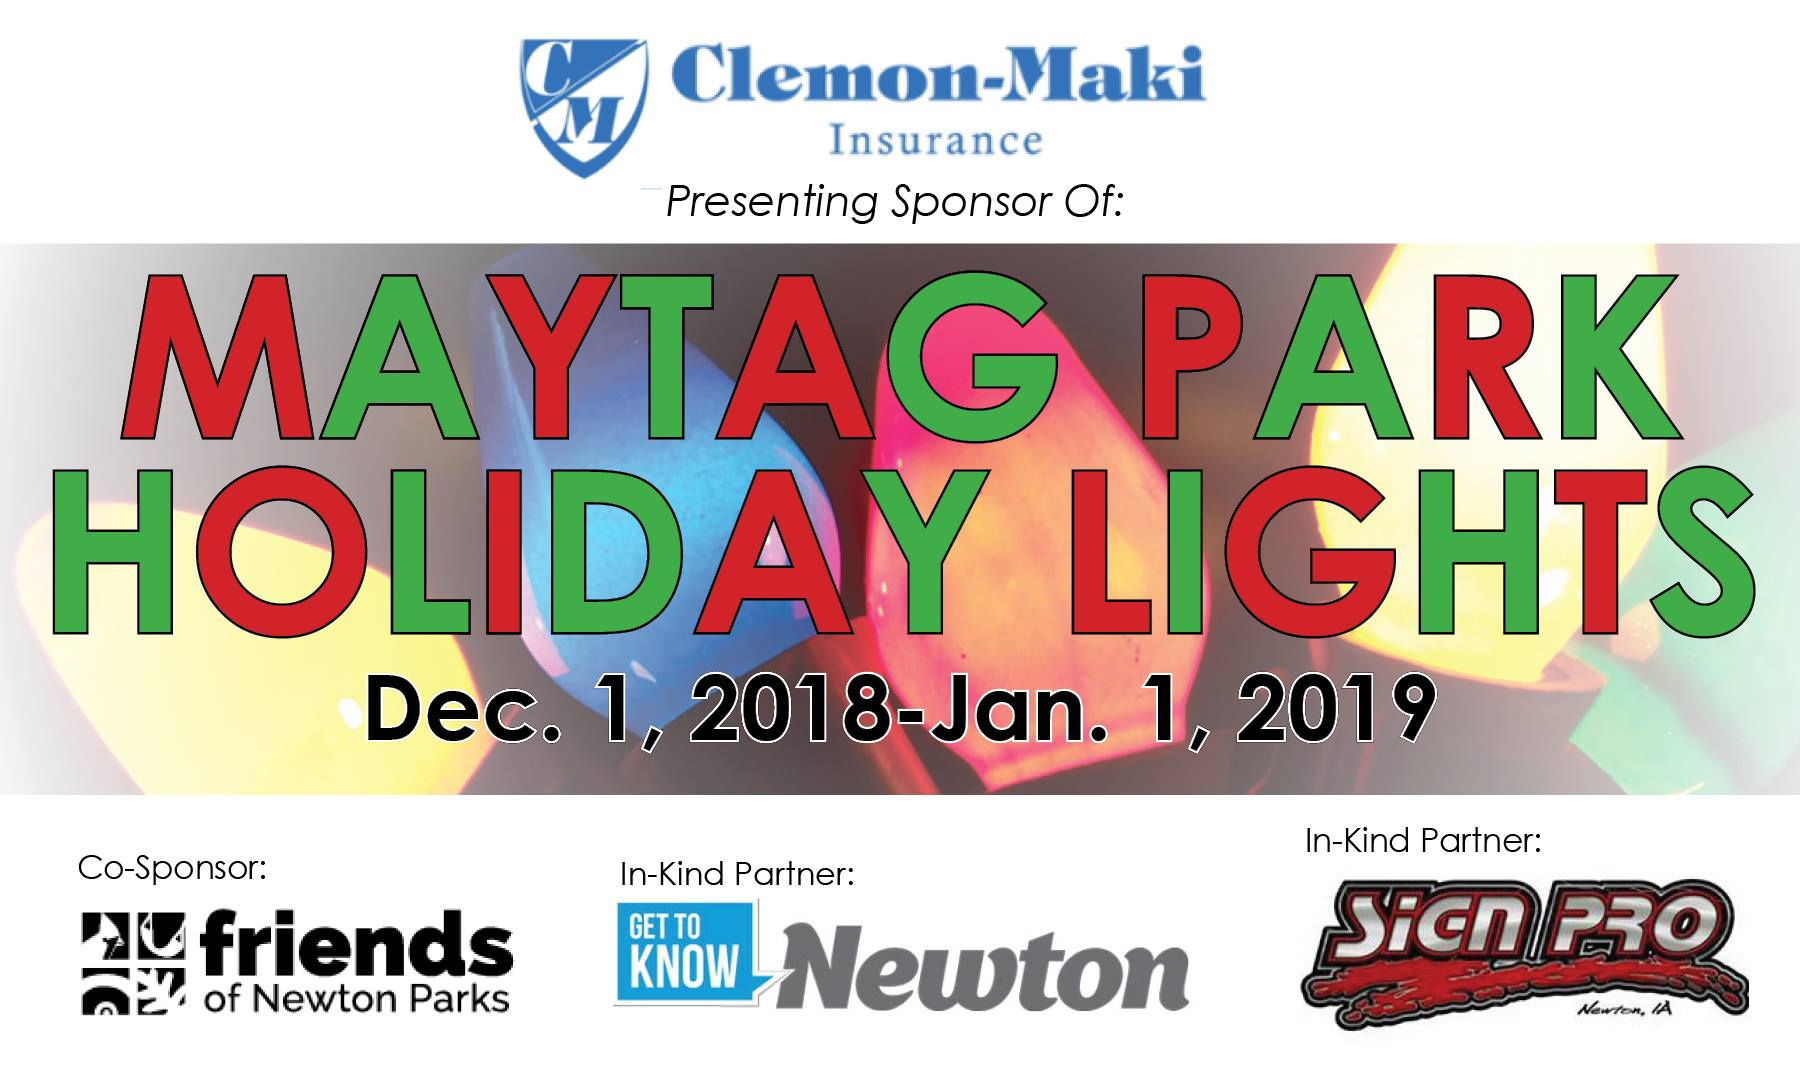 Maytag Park Holiday Light